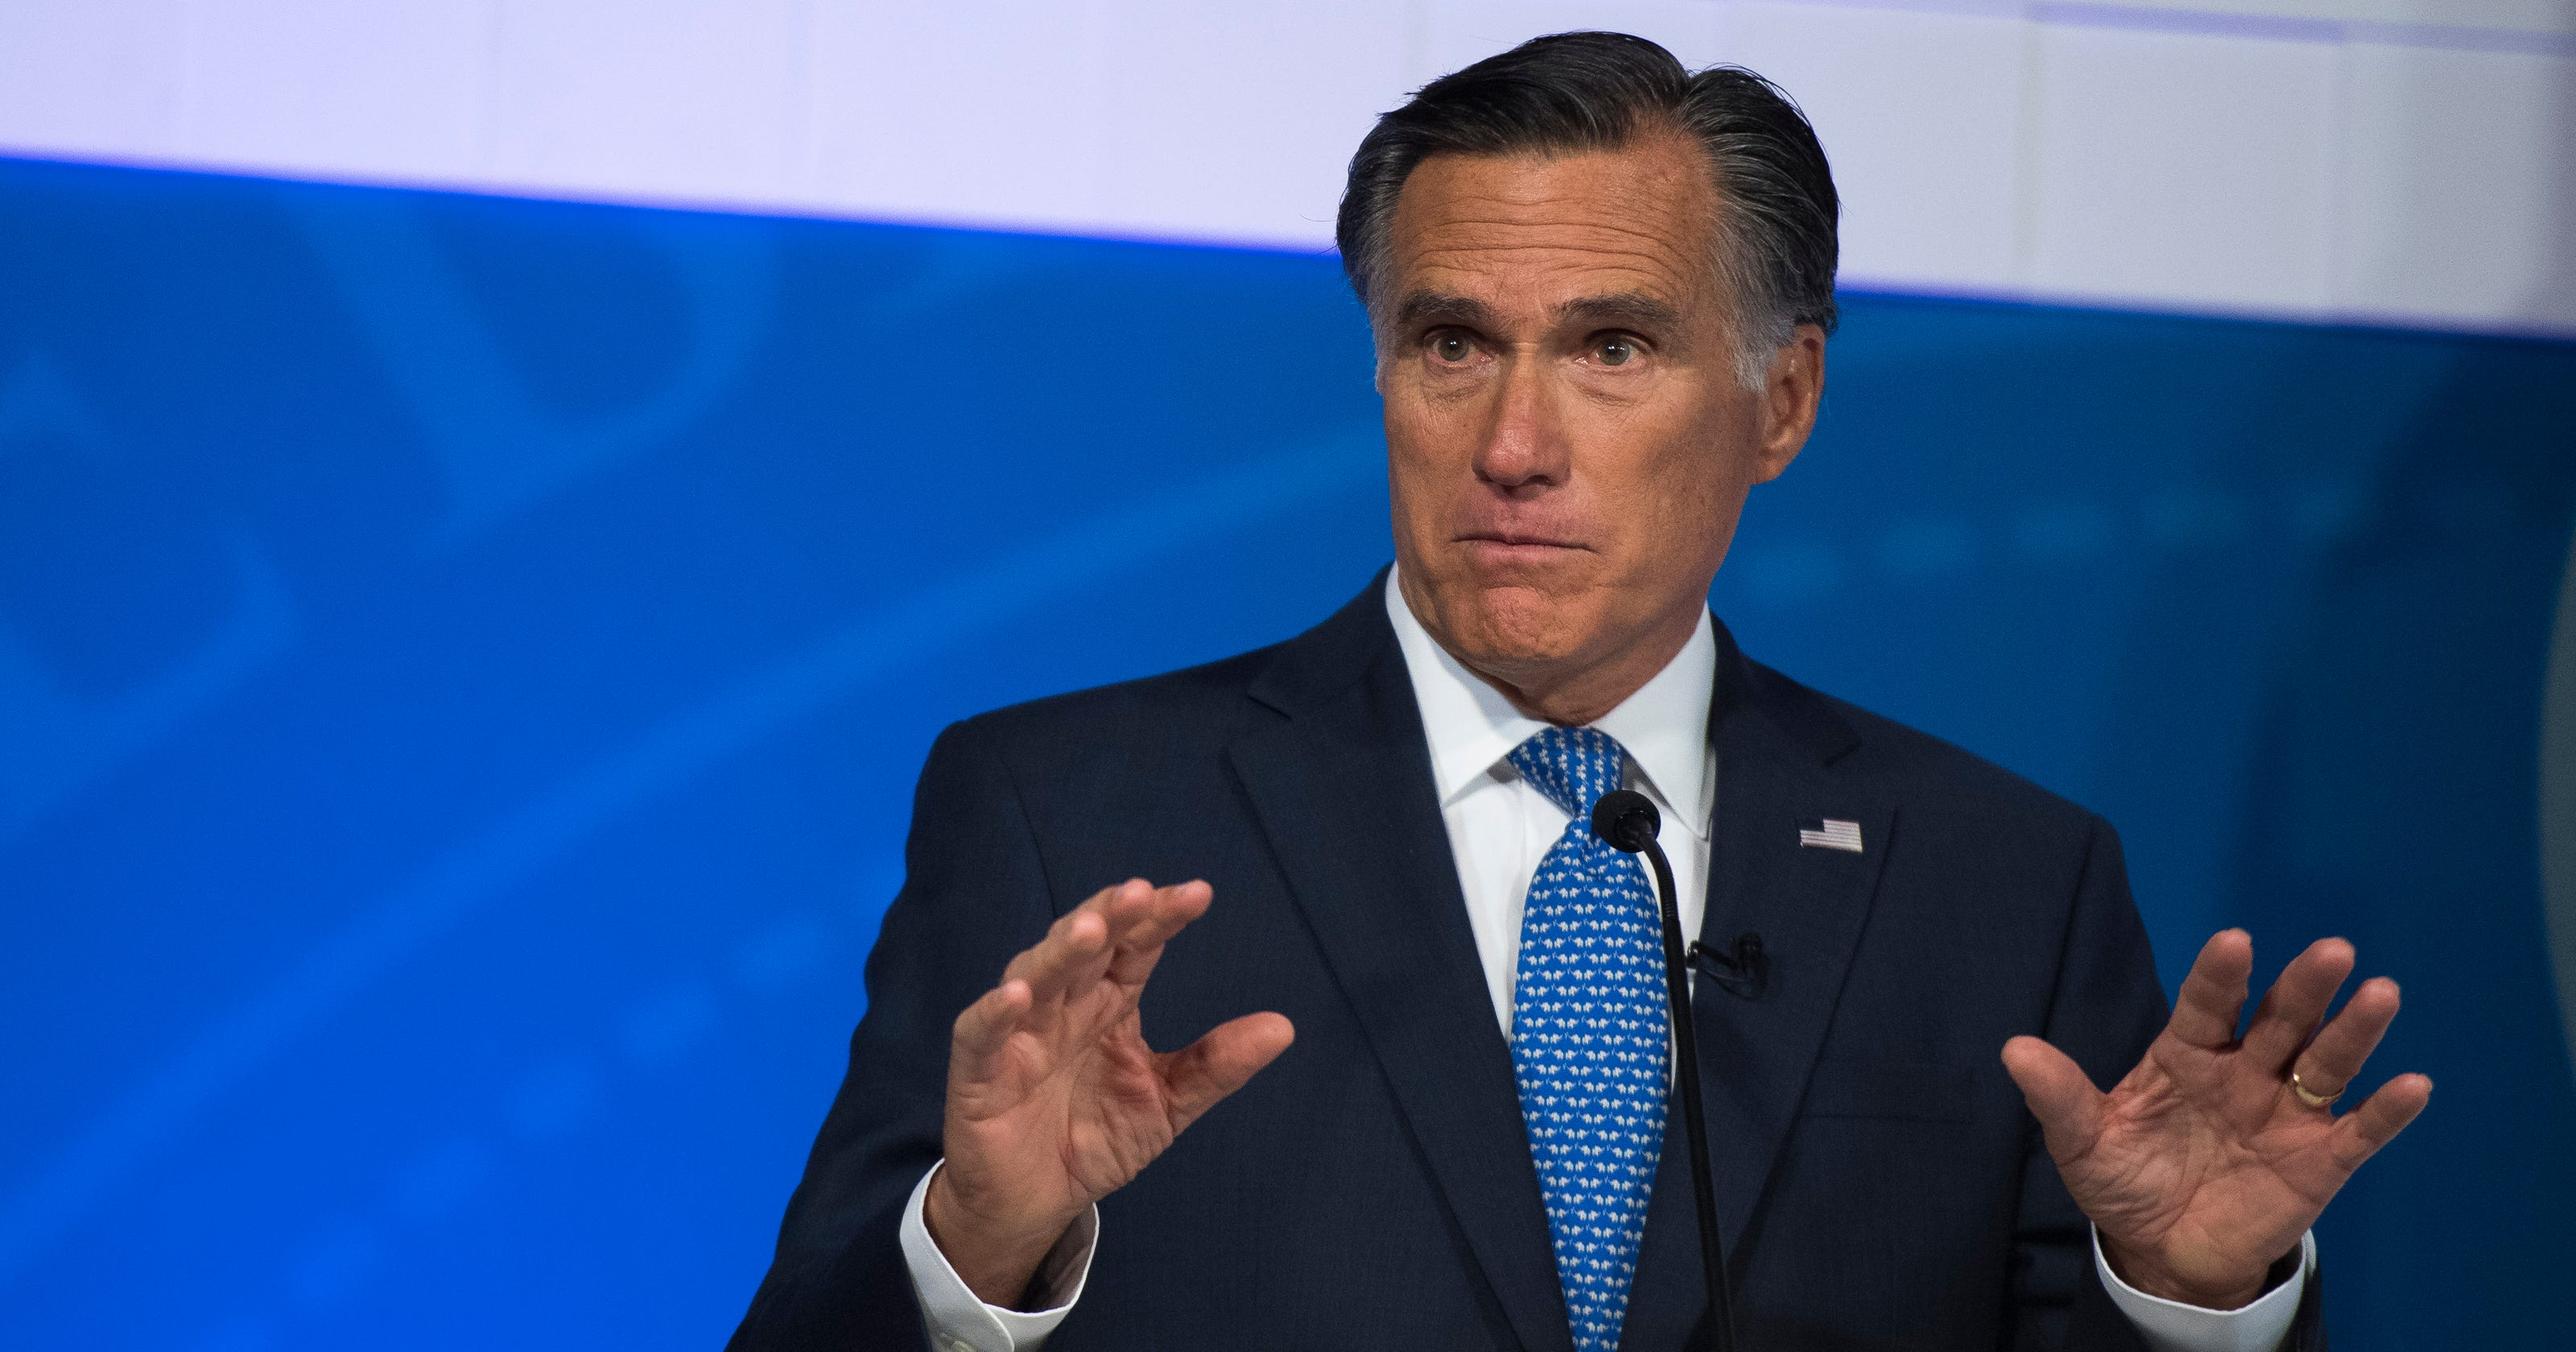 Romney Addresses Trump, China And Immigration At Town Hall